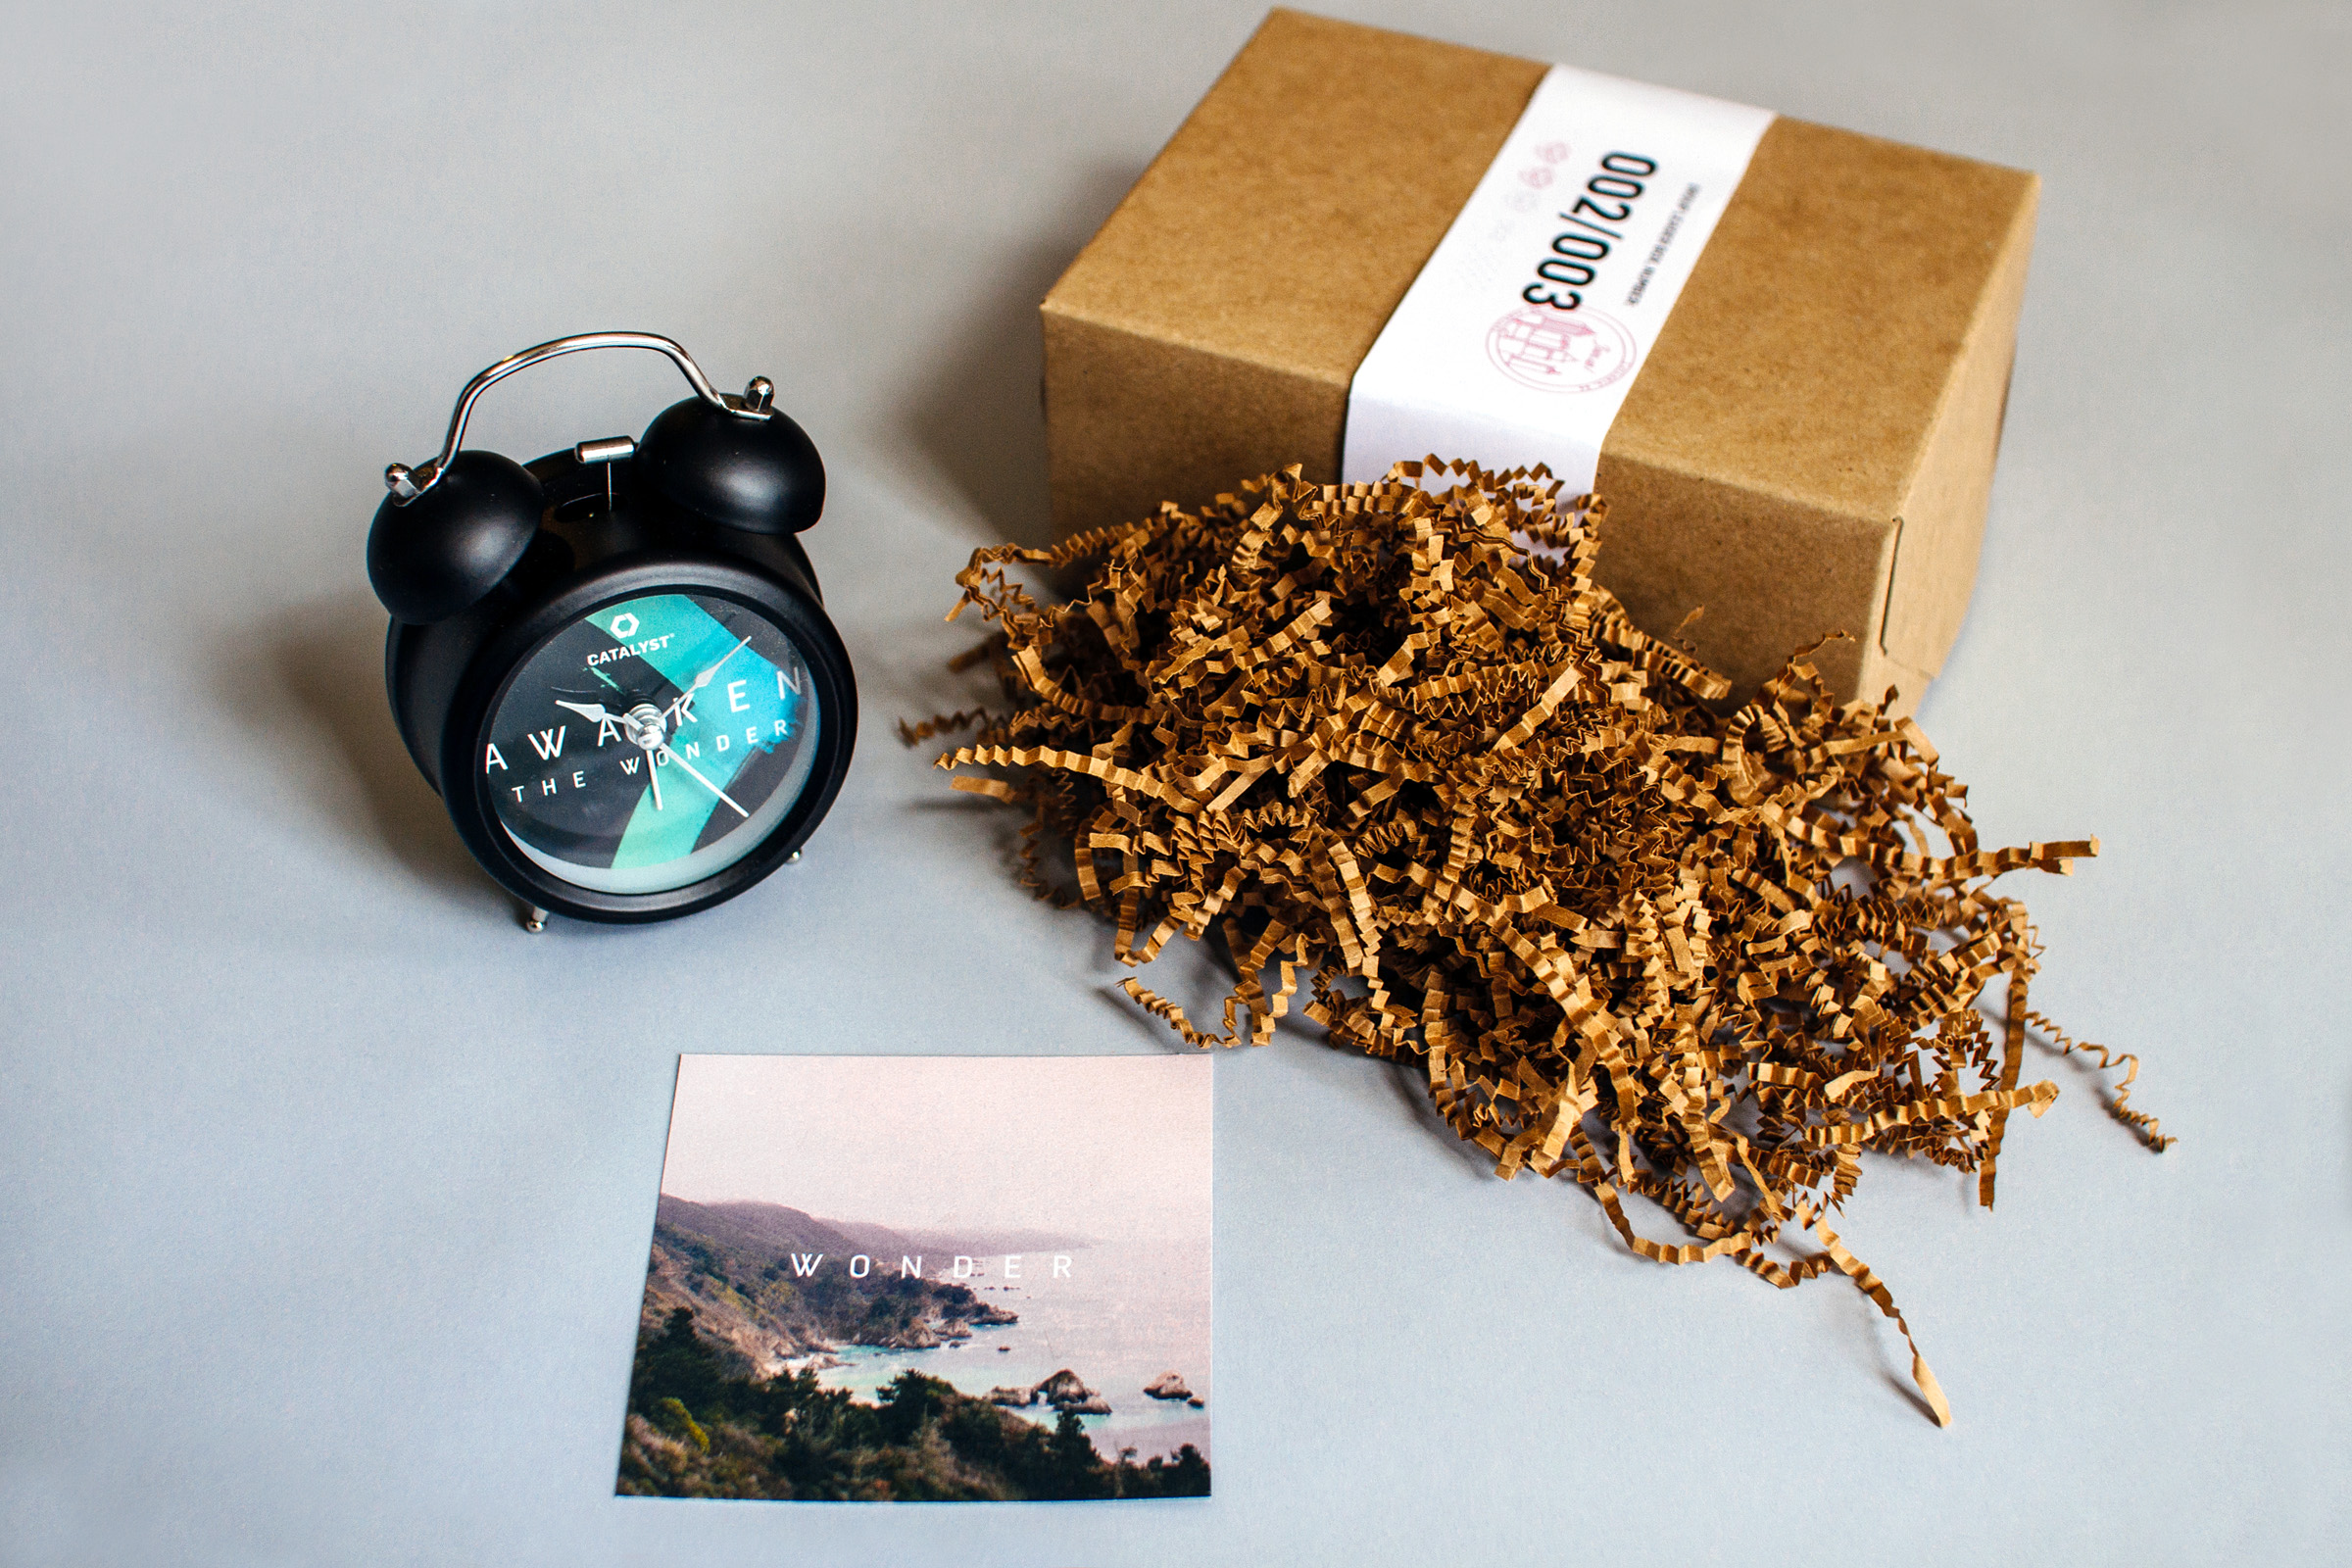 Box two of three in the progressive direct mail campaign to influencers and group leaders contained a custom alarm clock and a small card about Wonder, further revealing the conference theme in preparation.